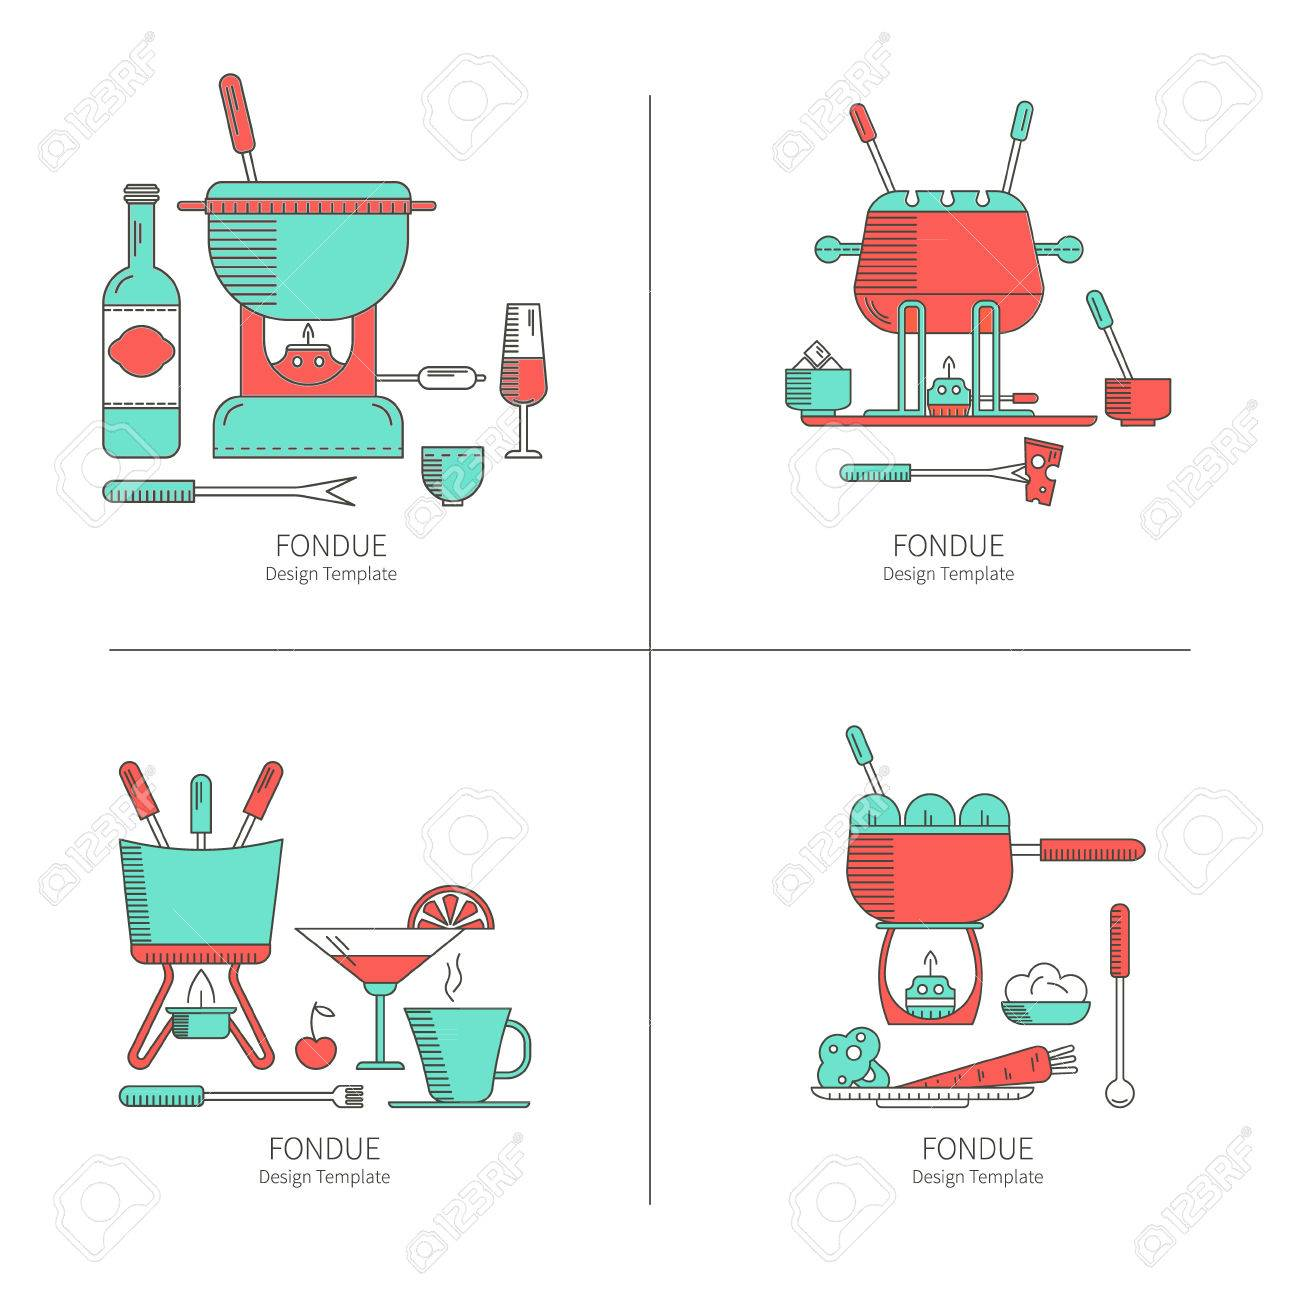 Fondue Party Graphics - High Quality Clip Art Vector •